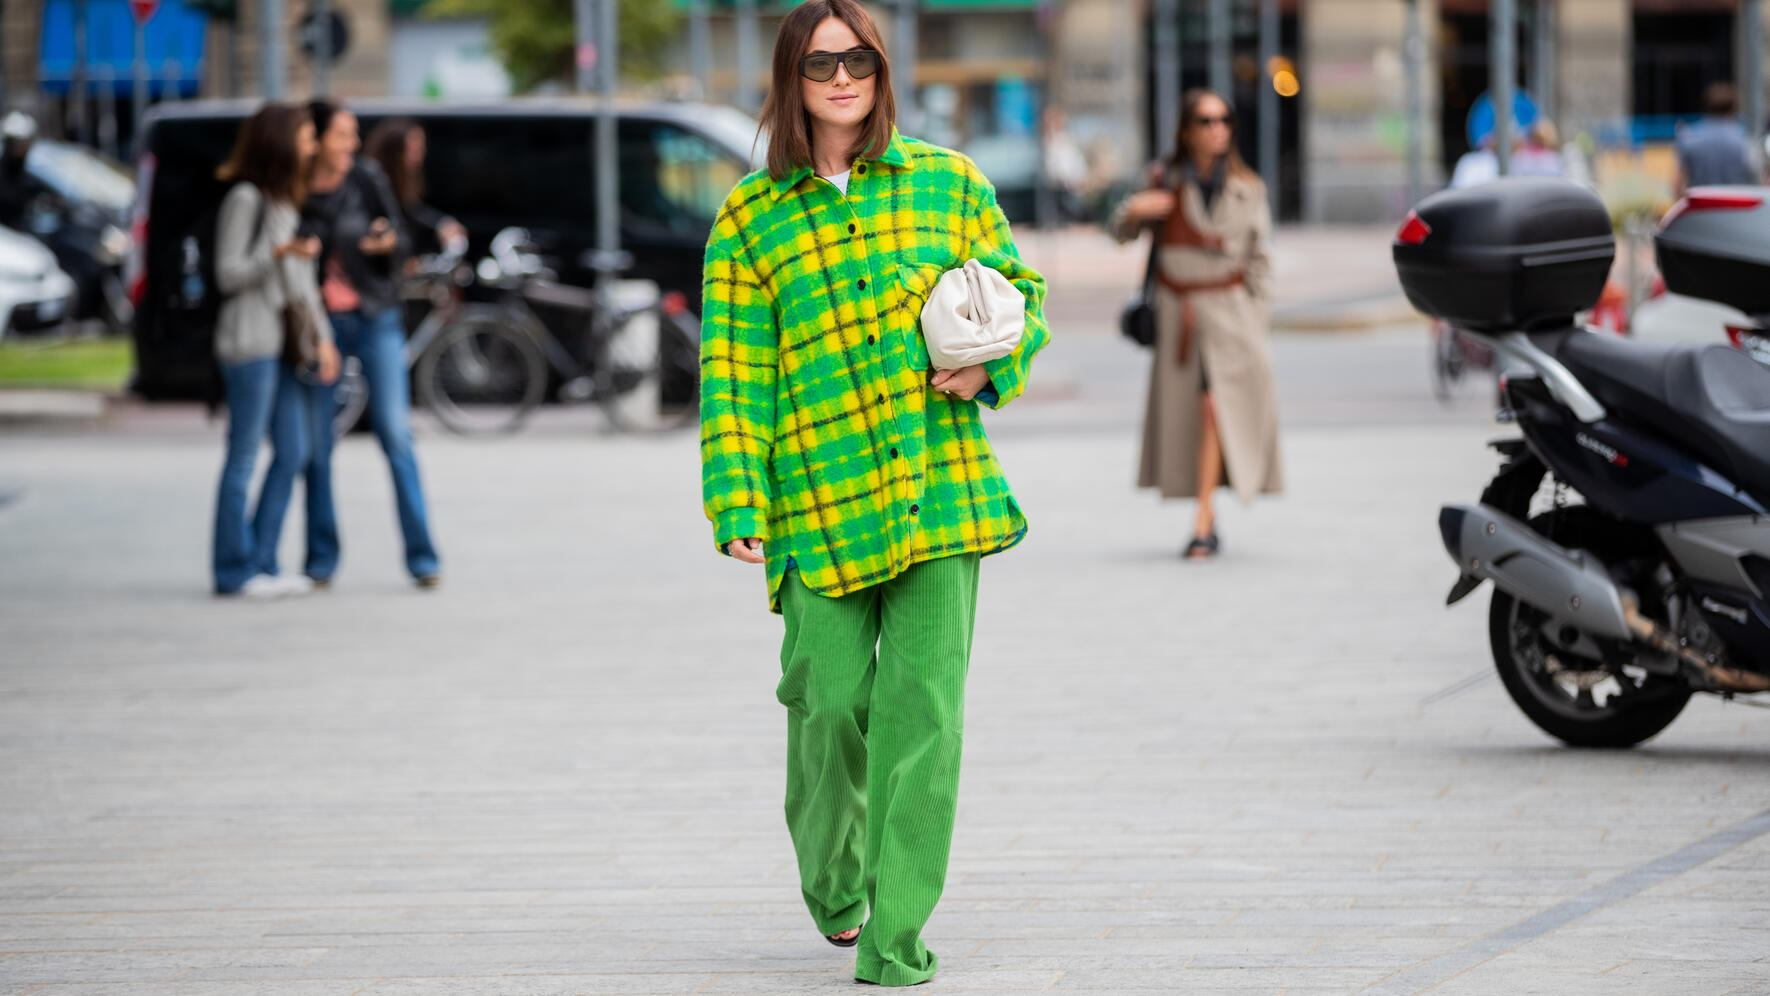 MILAN, ITALY - SEPTEMBER 20:  Lena Lademann seen wearing yellow green checkered flannel button shirt, green pants, Bottega Veneta pouch bag outside the Sportmax show during Milan Fashion Week Spring/Summer 2020 on September 20, 2019 in Milan, Italy. (Photo by Christian Vierig/Getty Images)